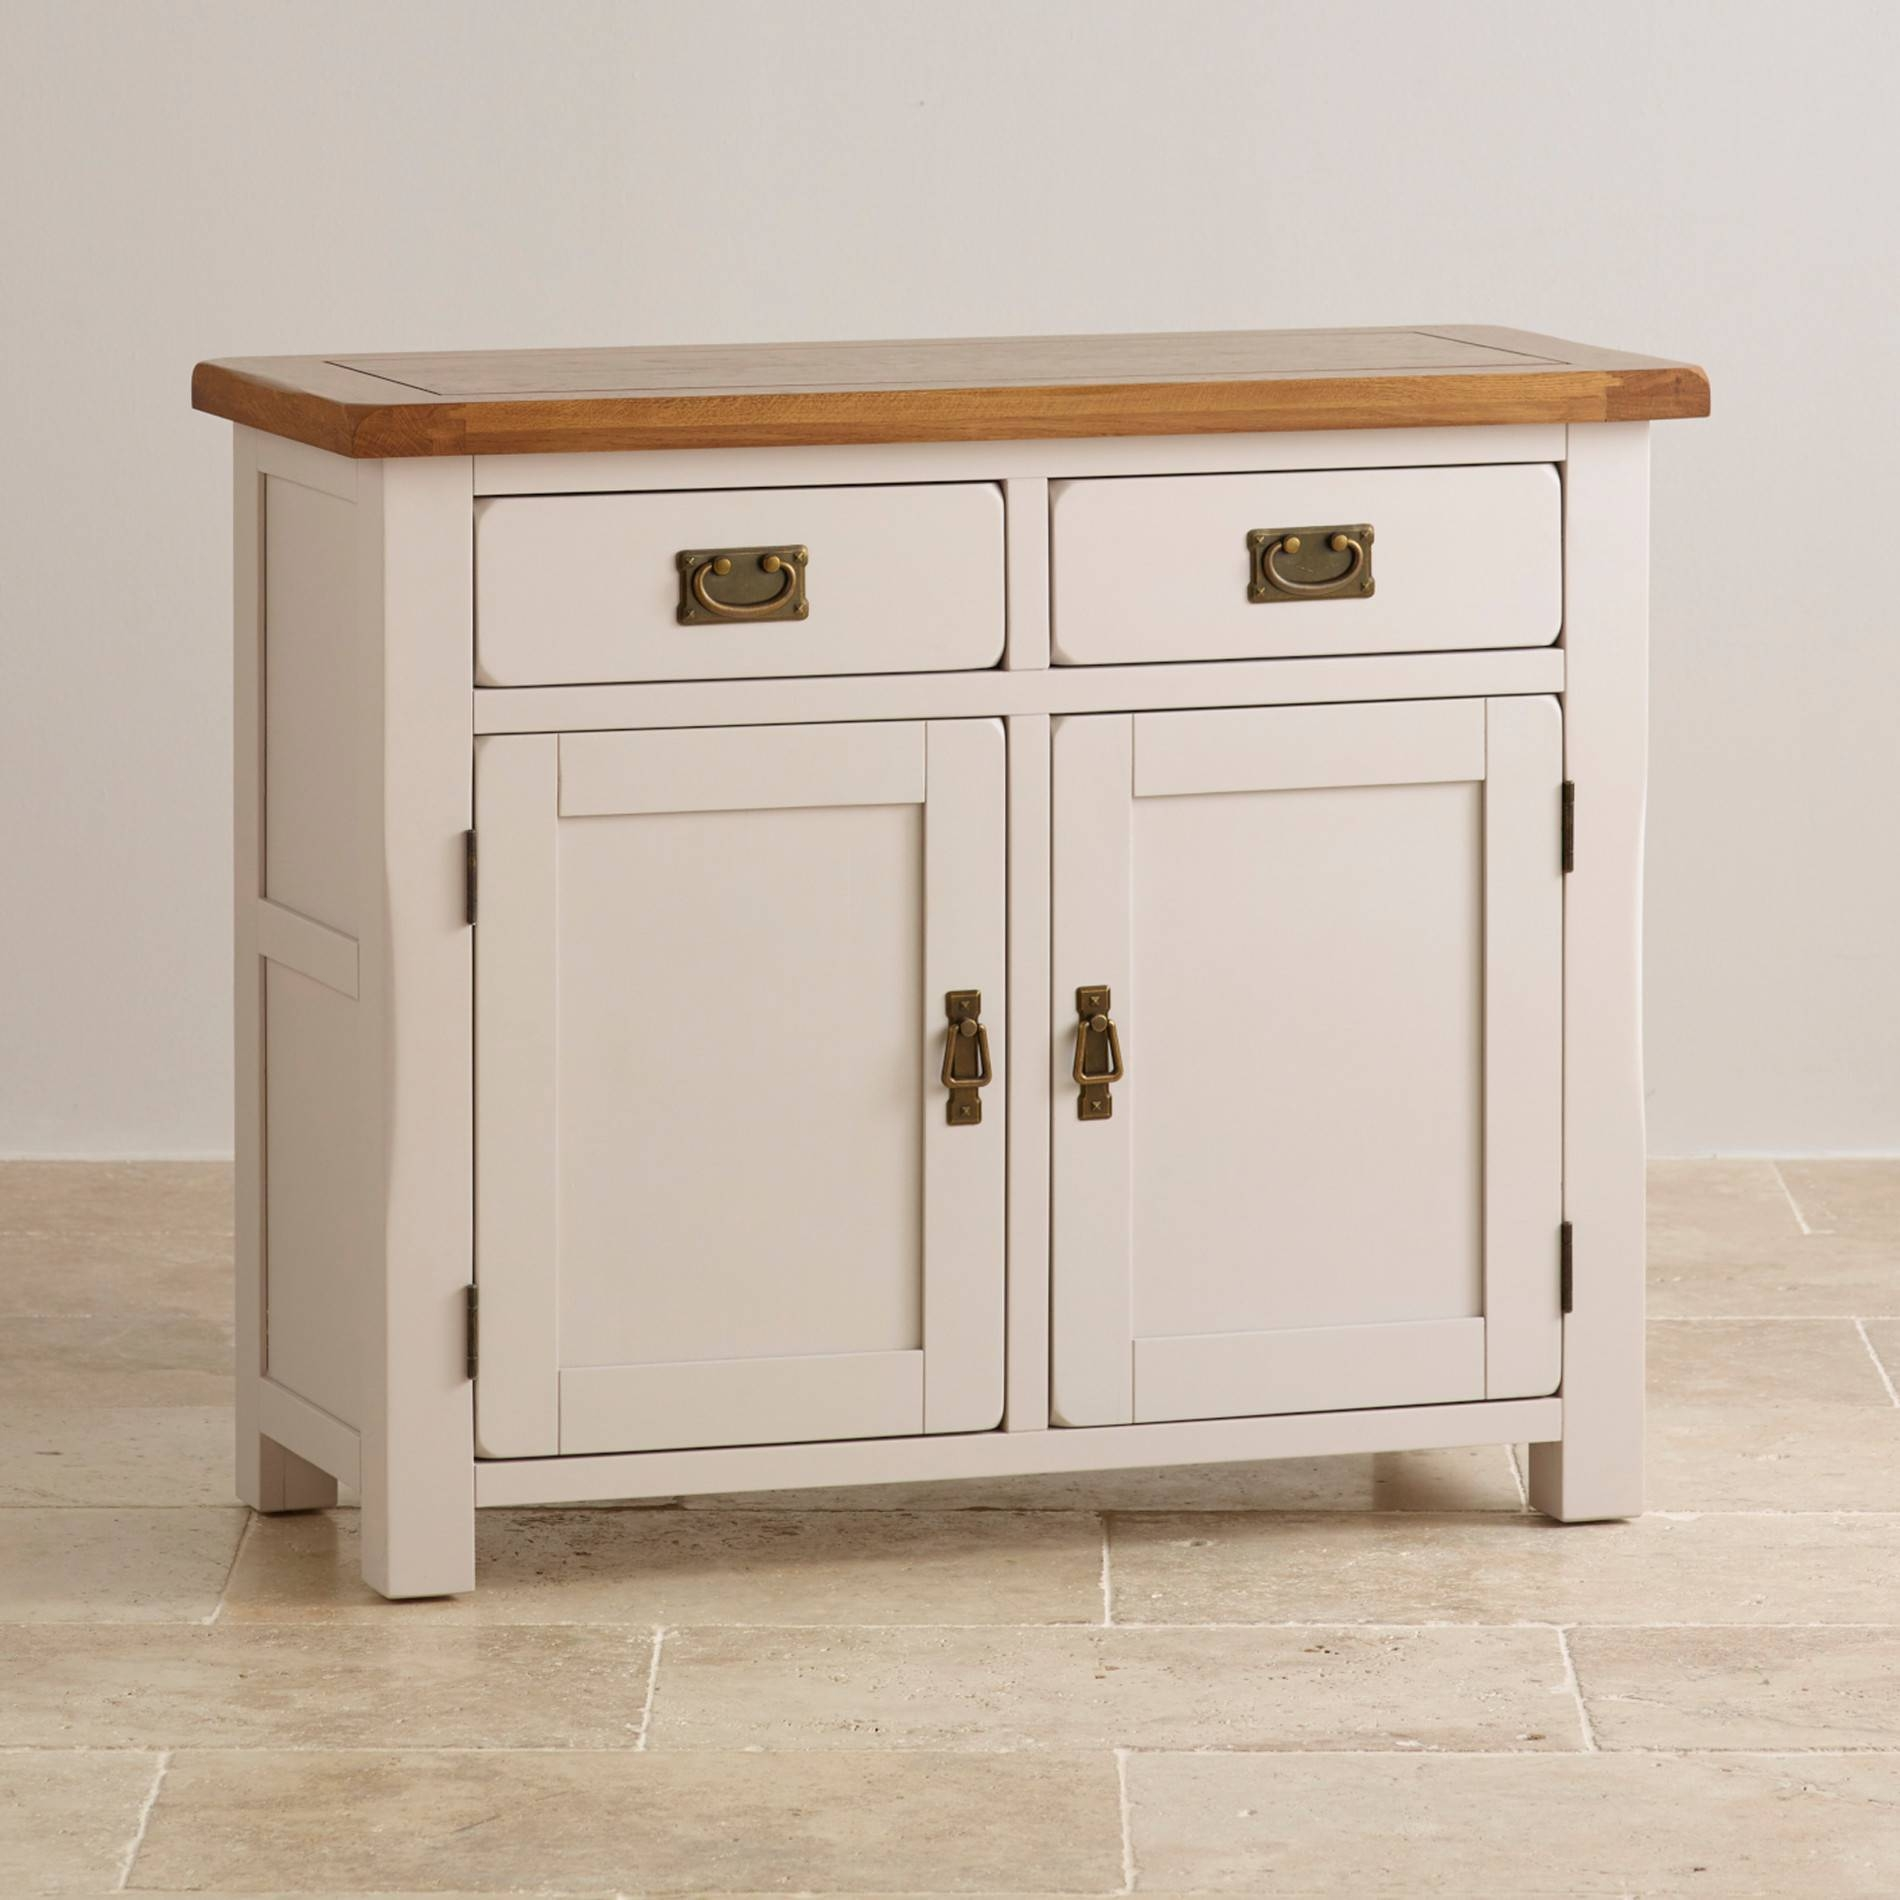 Kemble Small Painted Sideboard In Rustic Solid Oak Within Small Sideboards With Drawers (View 8 of 15)